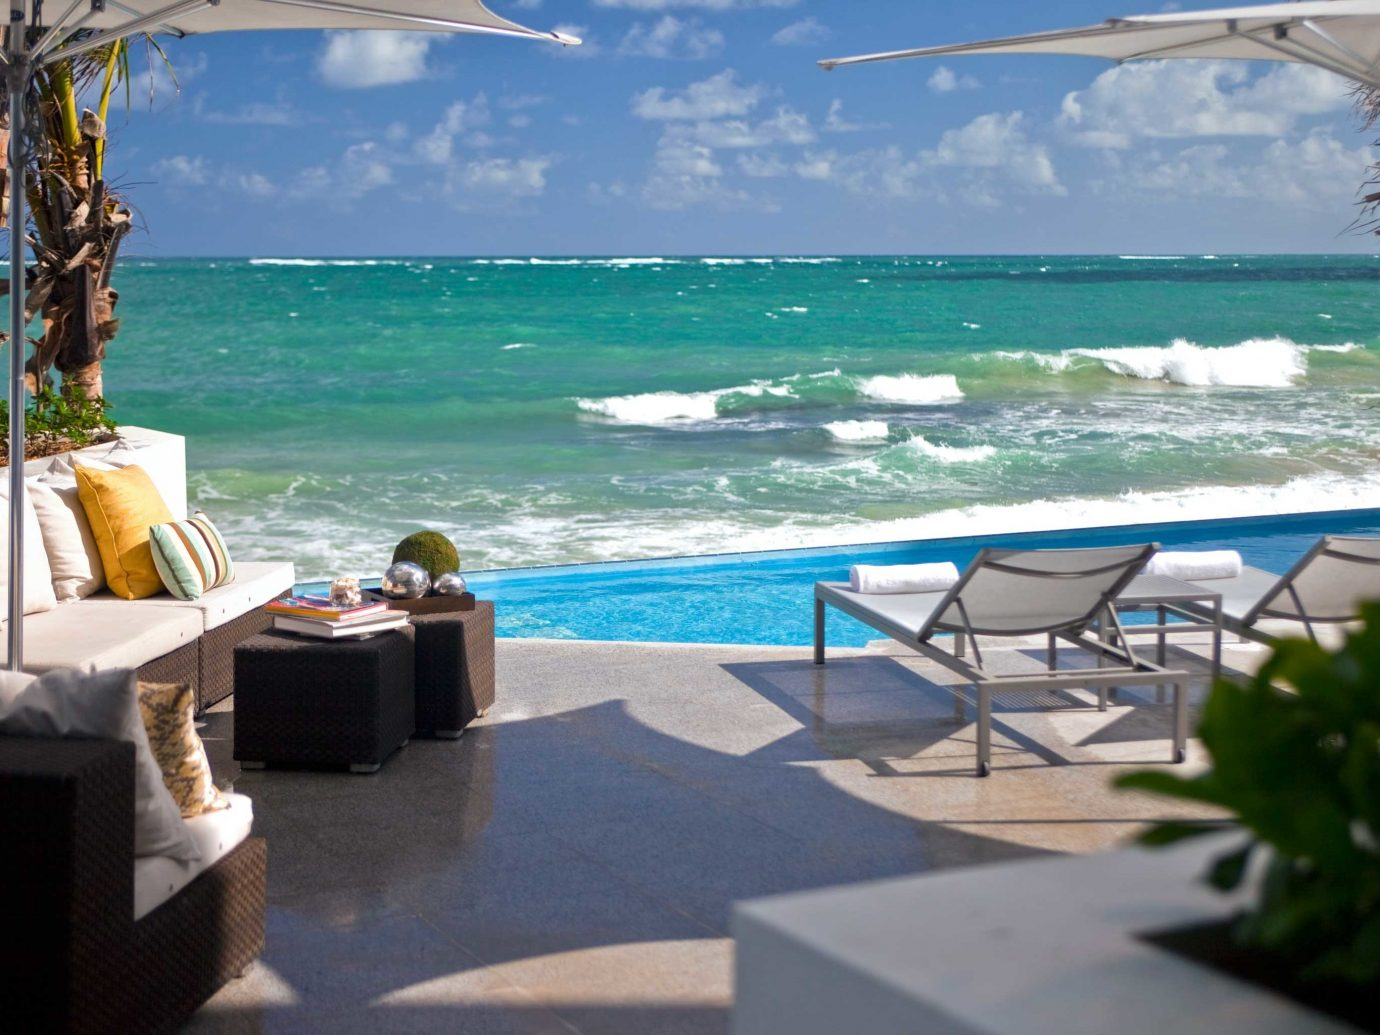 Beach Beachfront Hotels Living Patio Pool Resort Scenic views outdoor water leisure chair property caribbean vacation swimming pool Ocean Sea estate Villa bay shore day